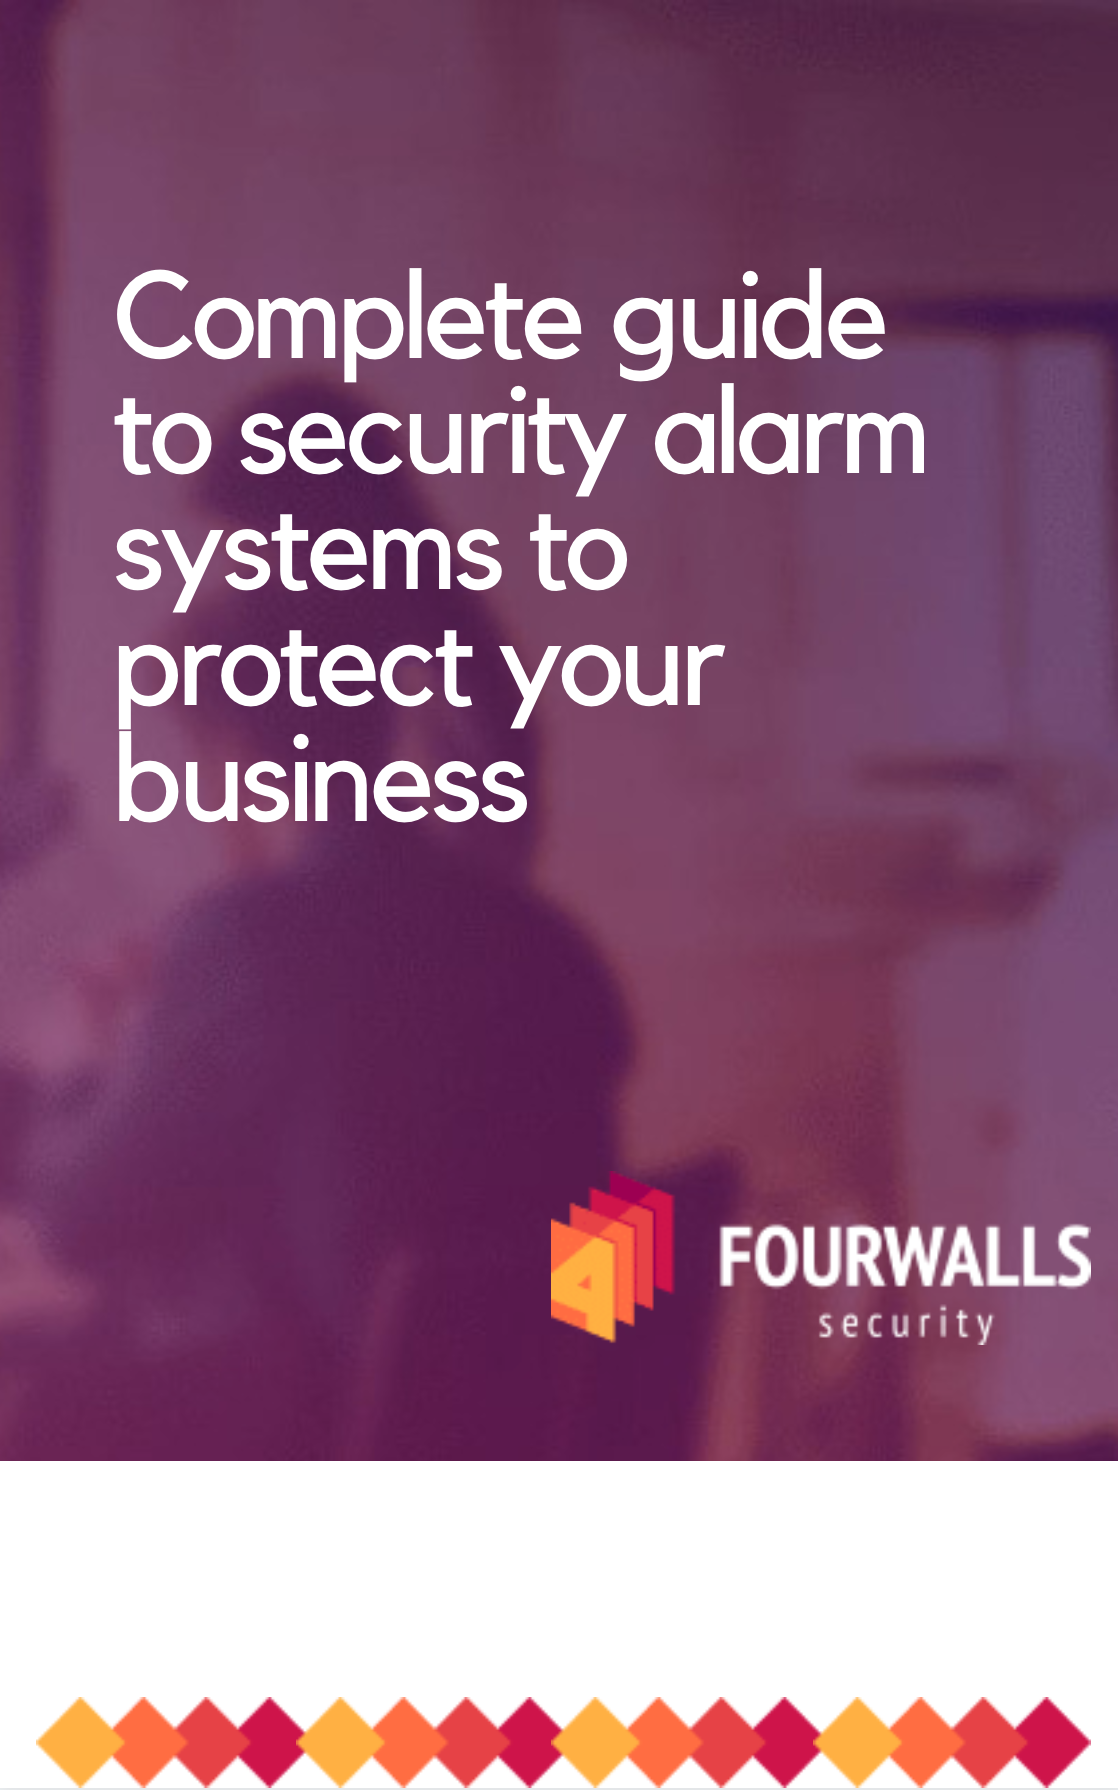 Complete guide to security alarm systems to protect your business